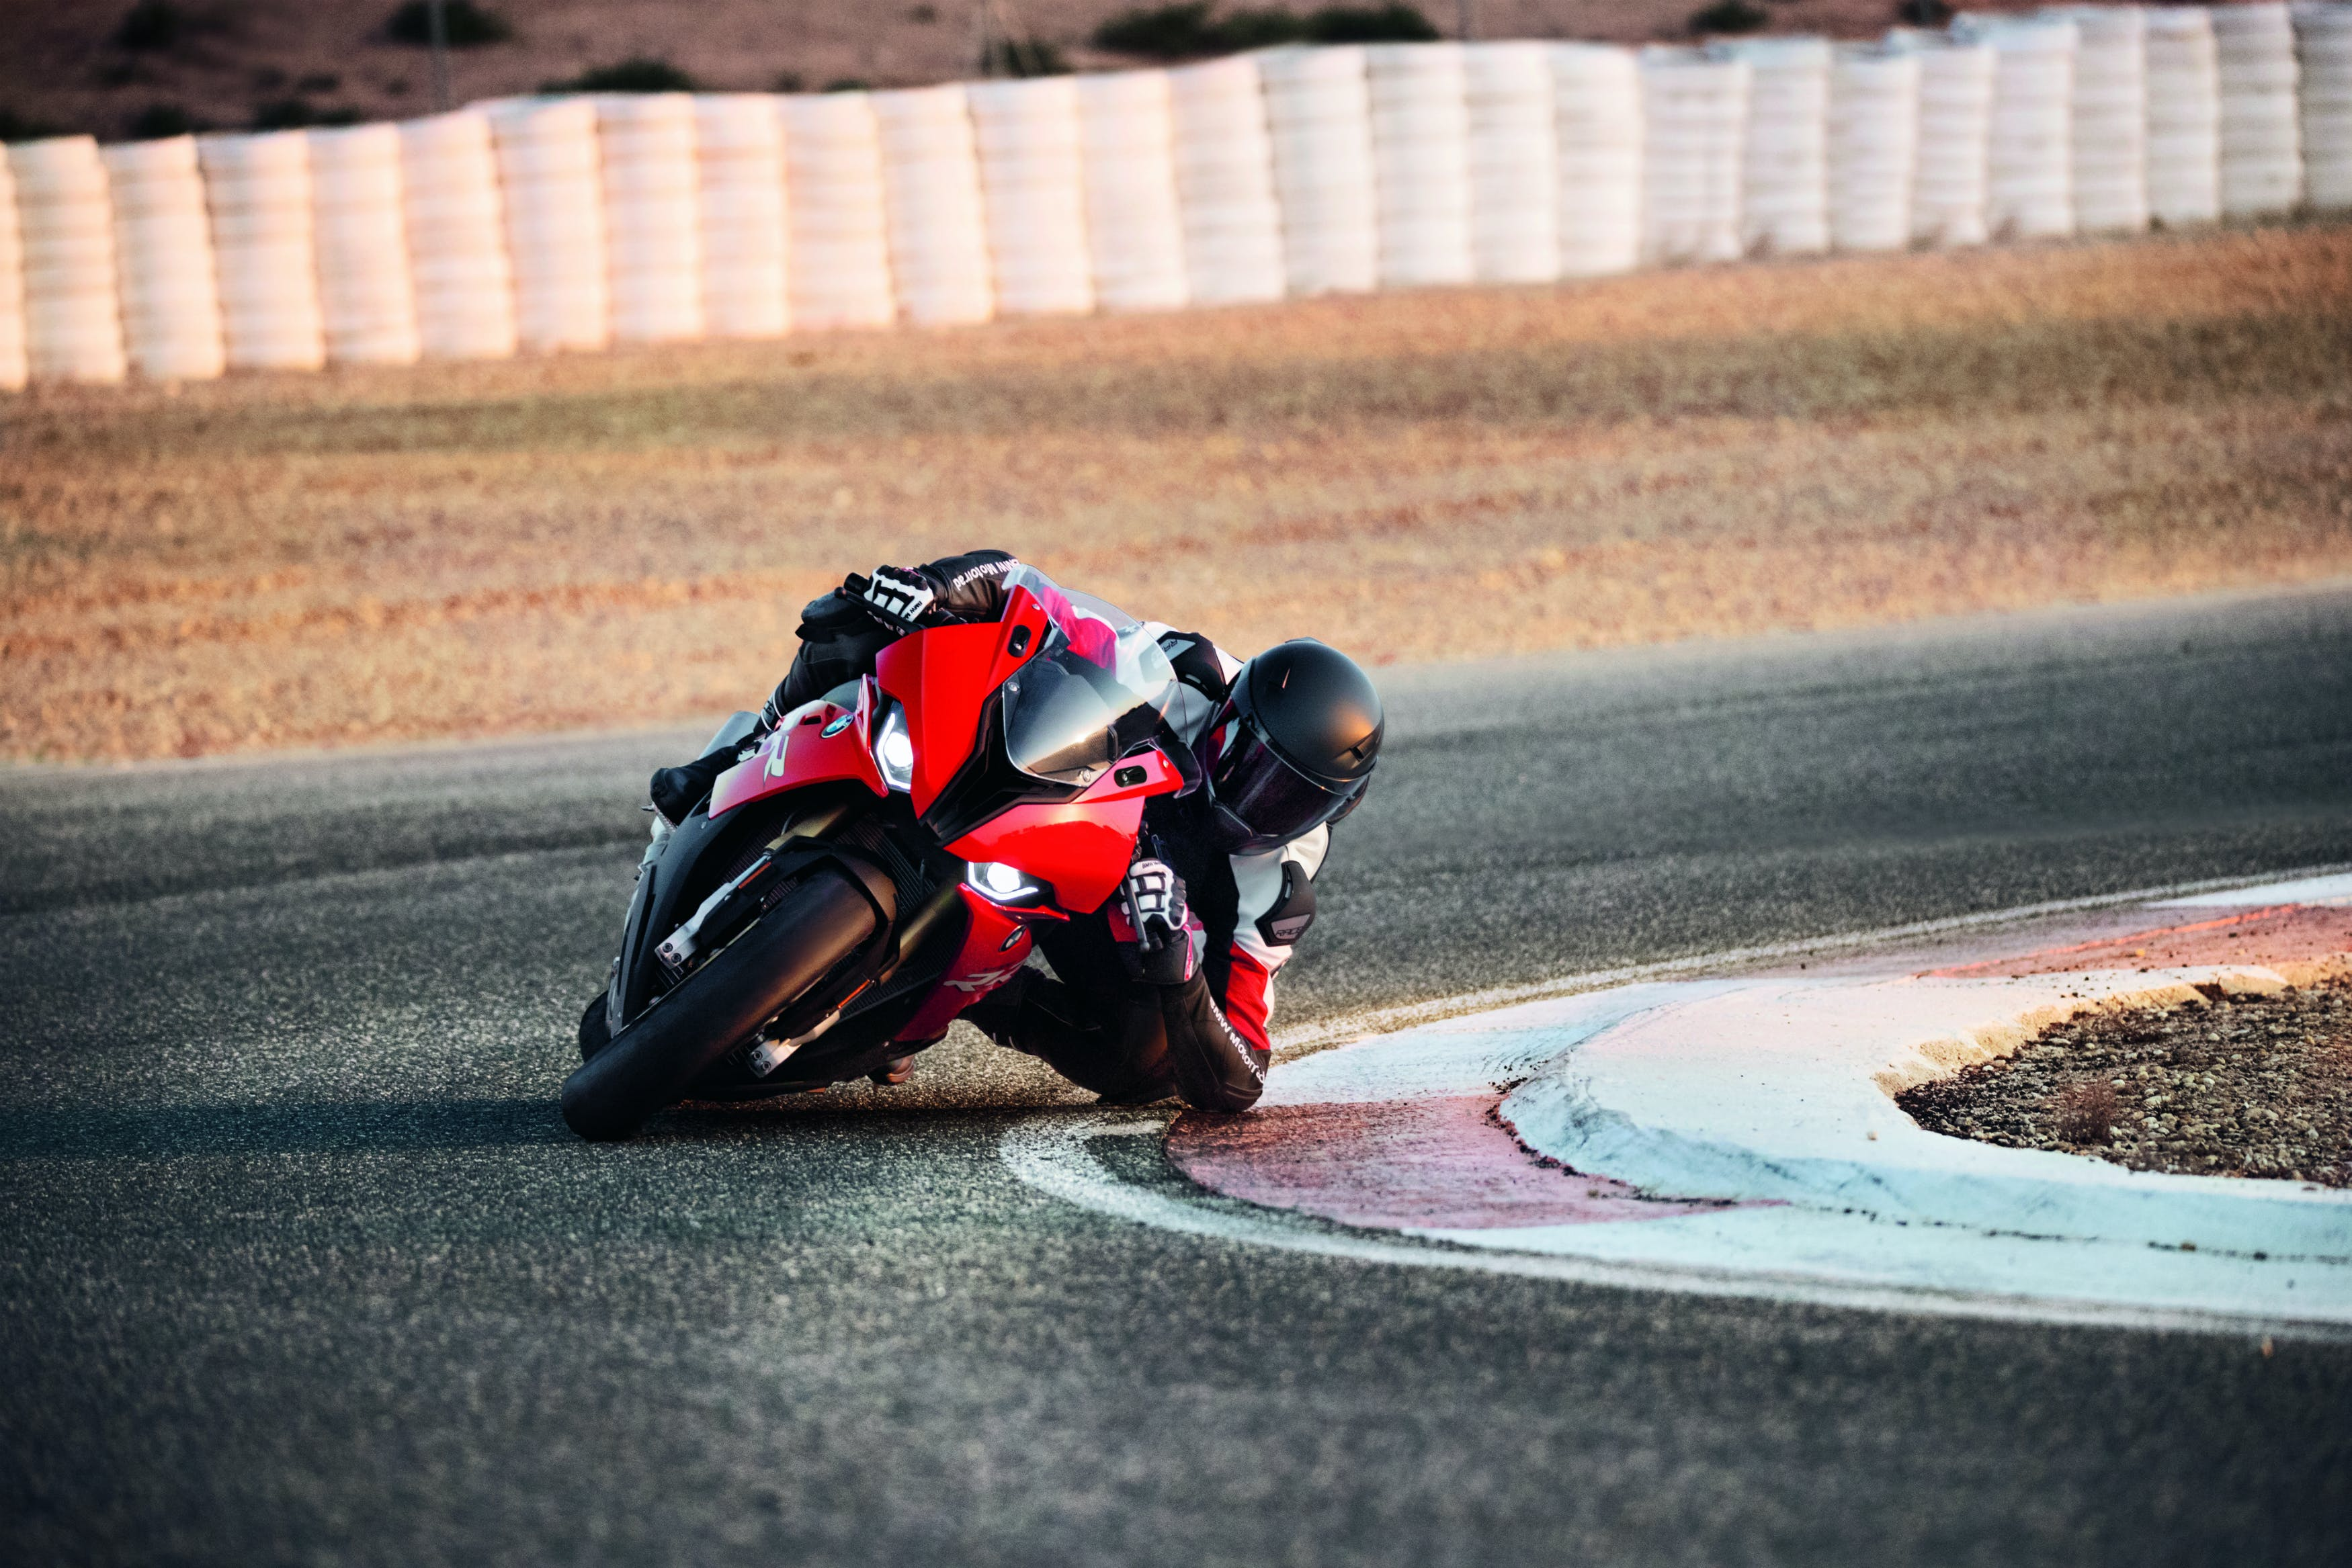 BMW S 1000 RR M SPORT being ridden on the race track